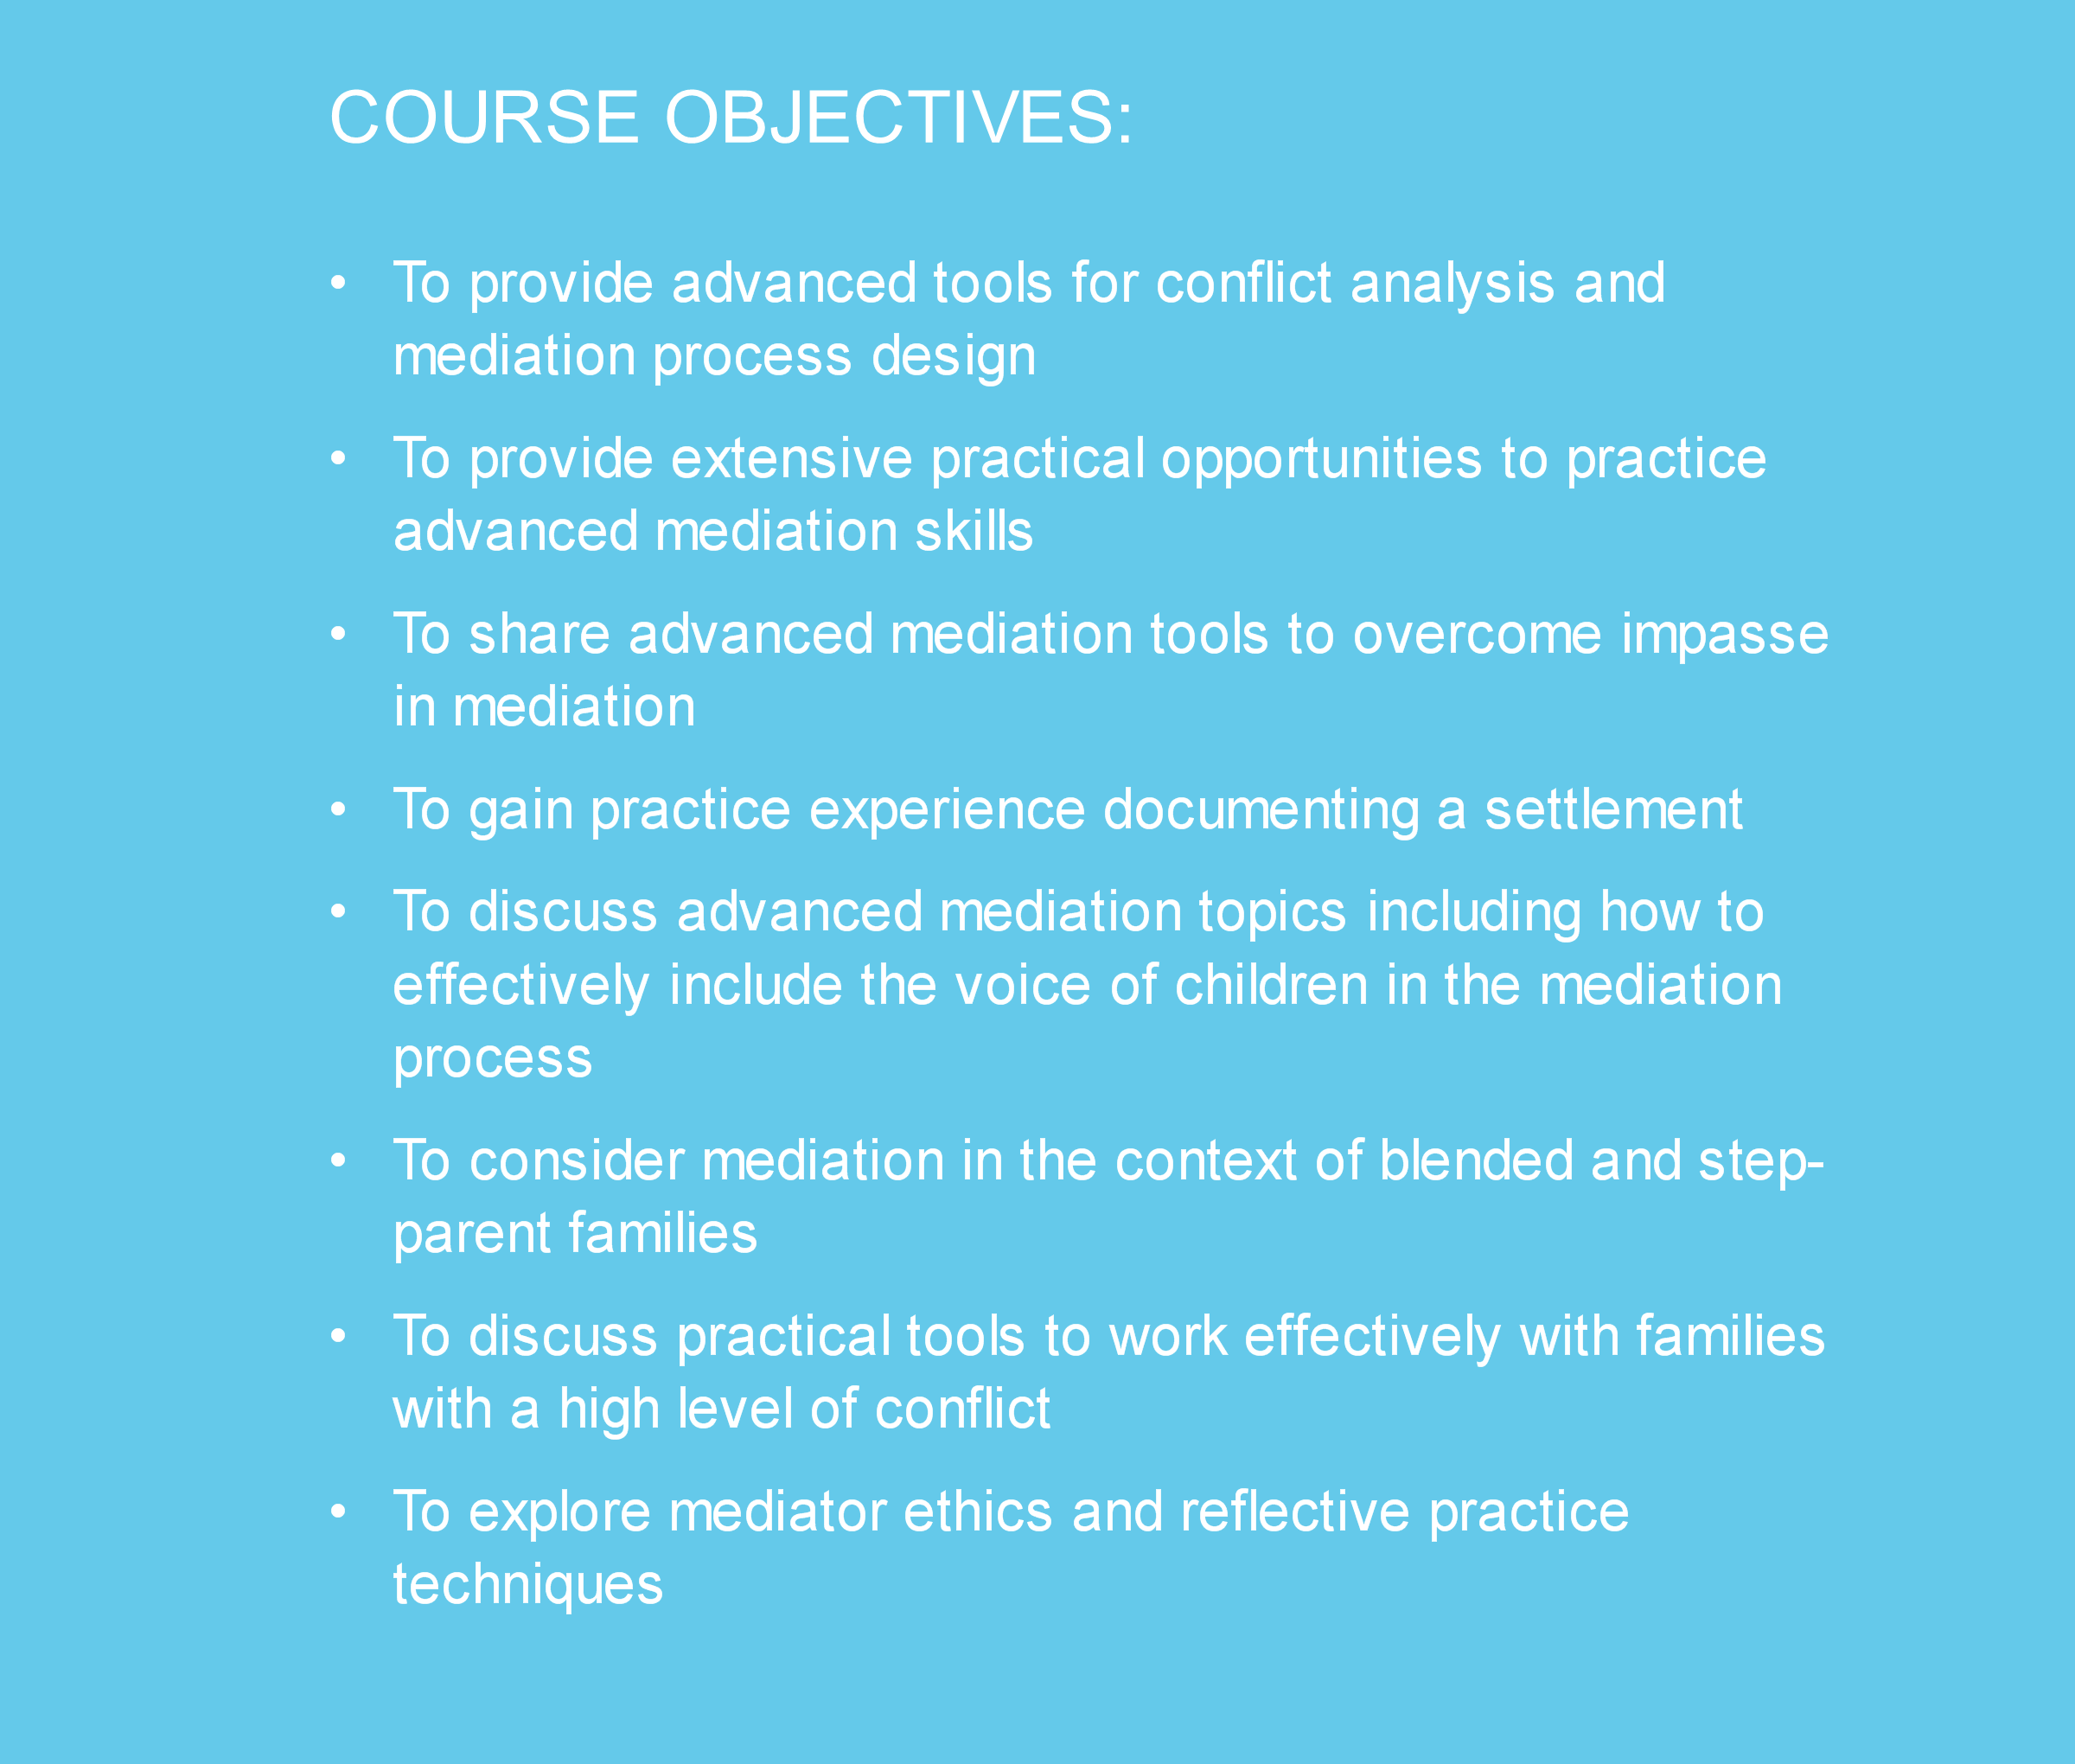 course-objectives-advanced-white-on-turquoise-2400